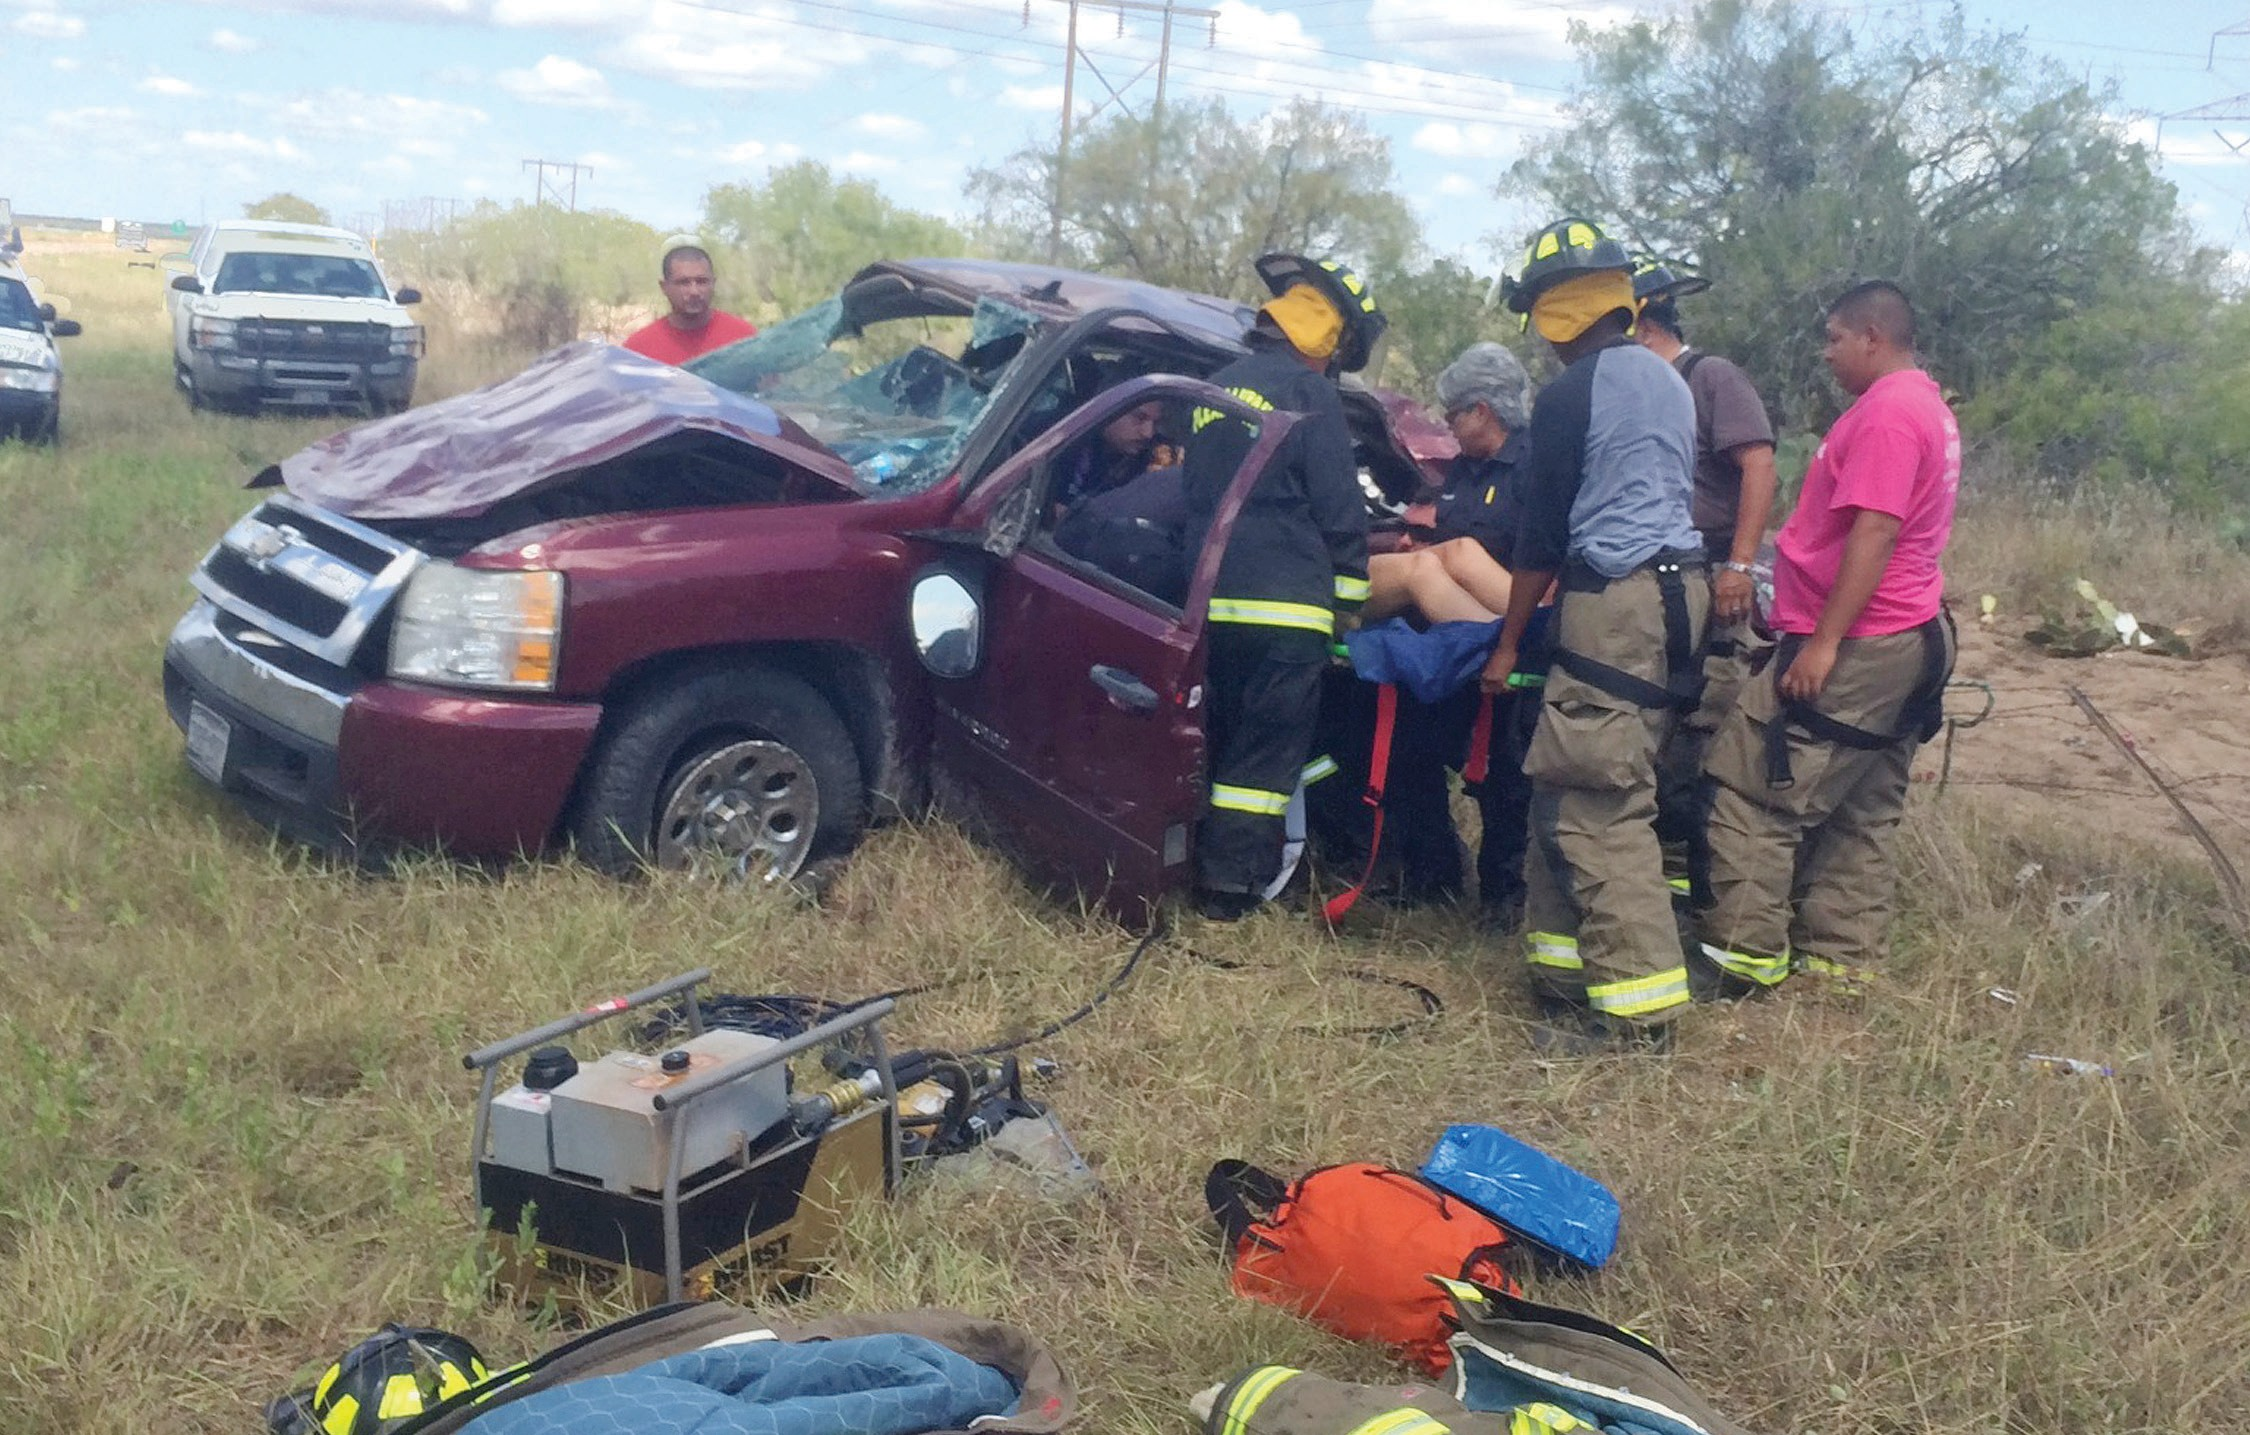 The Jaws-of-Life were needed for an accident near mile marker 96 on IH 37, Tuesday, September 9. A young woman driving a 2008 Chevy Silverado to college from McAllen over-corrected causing the one-vehicle roll-over. Campbellton and Pleasanton Volunteer Fire Departments responded to the call and the patient was transported to South Texas Regional Medical Center in Jourdanton by EMS.